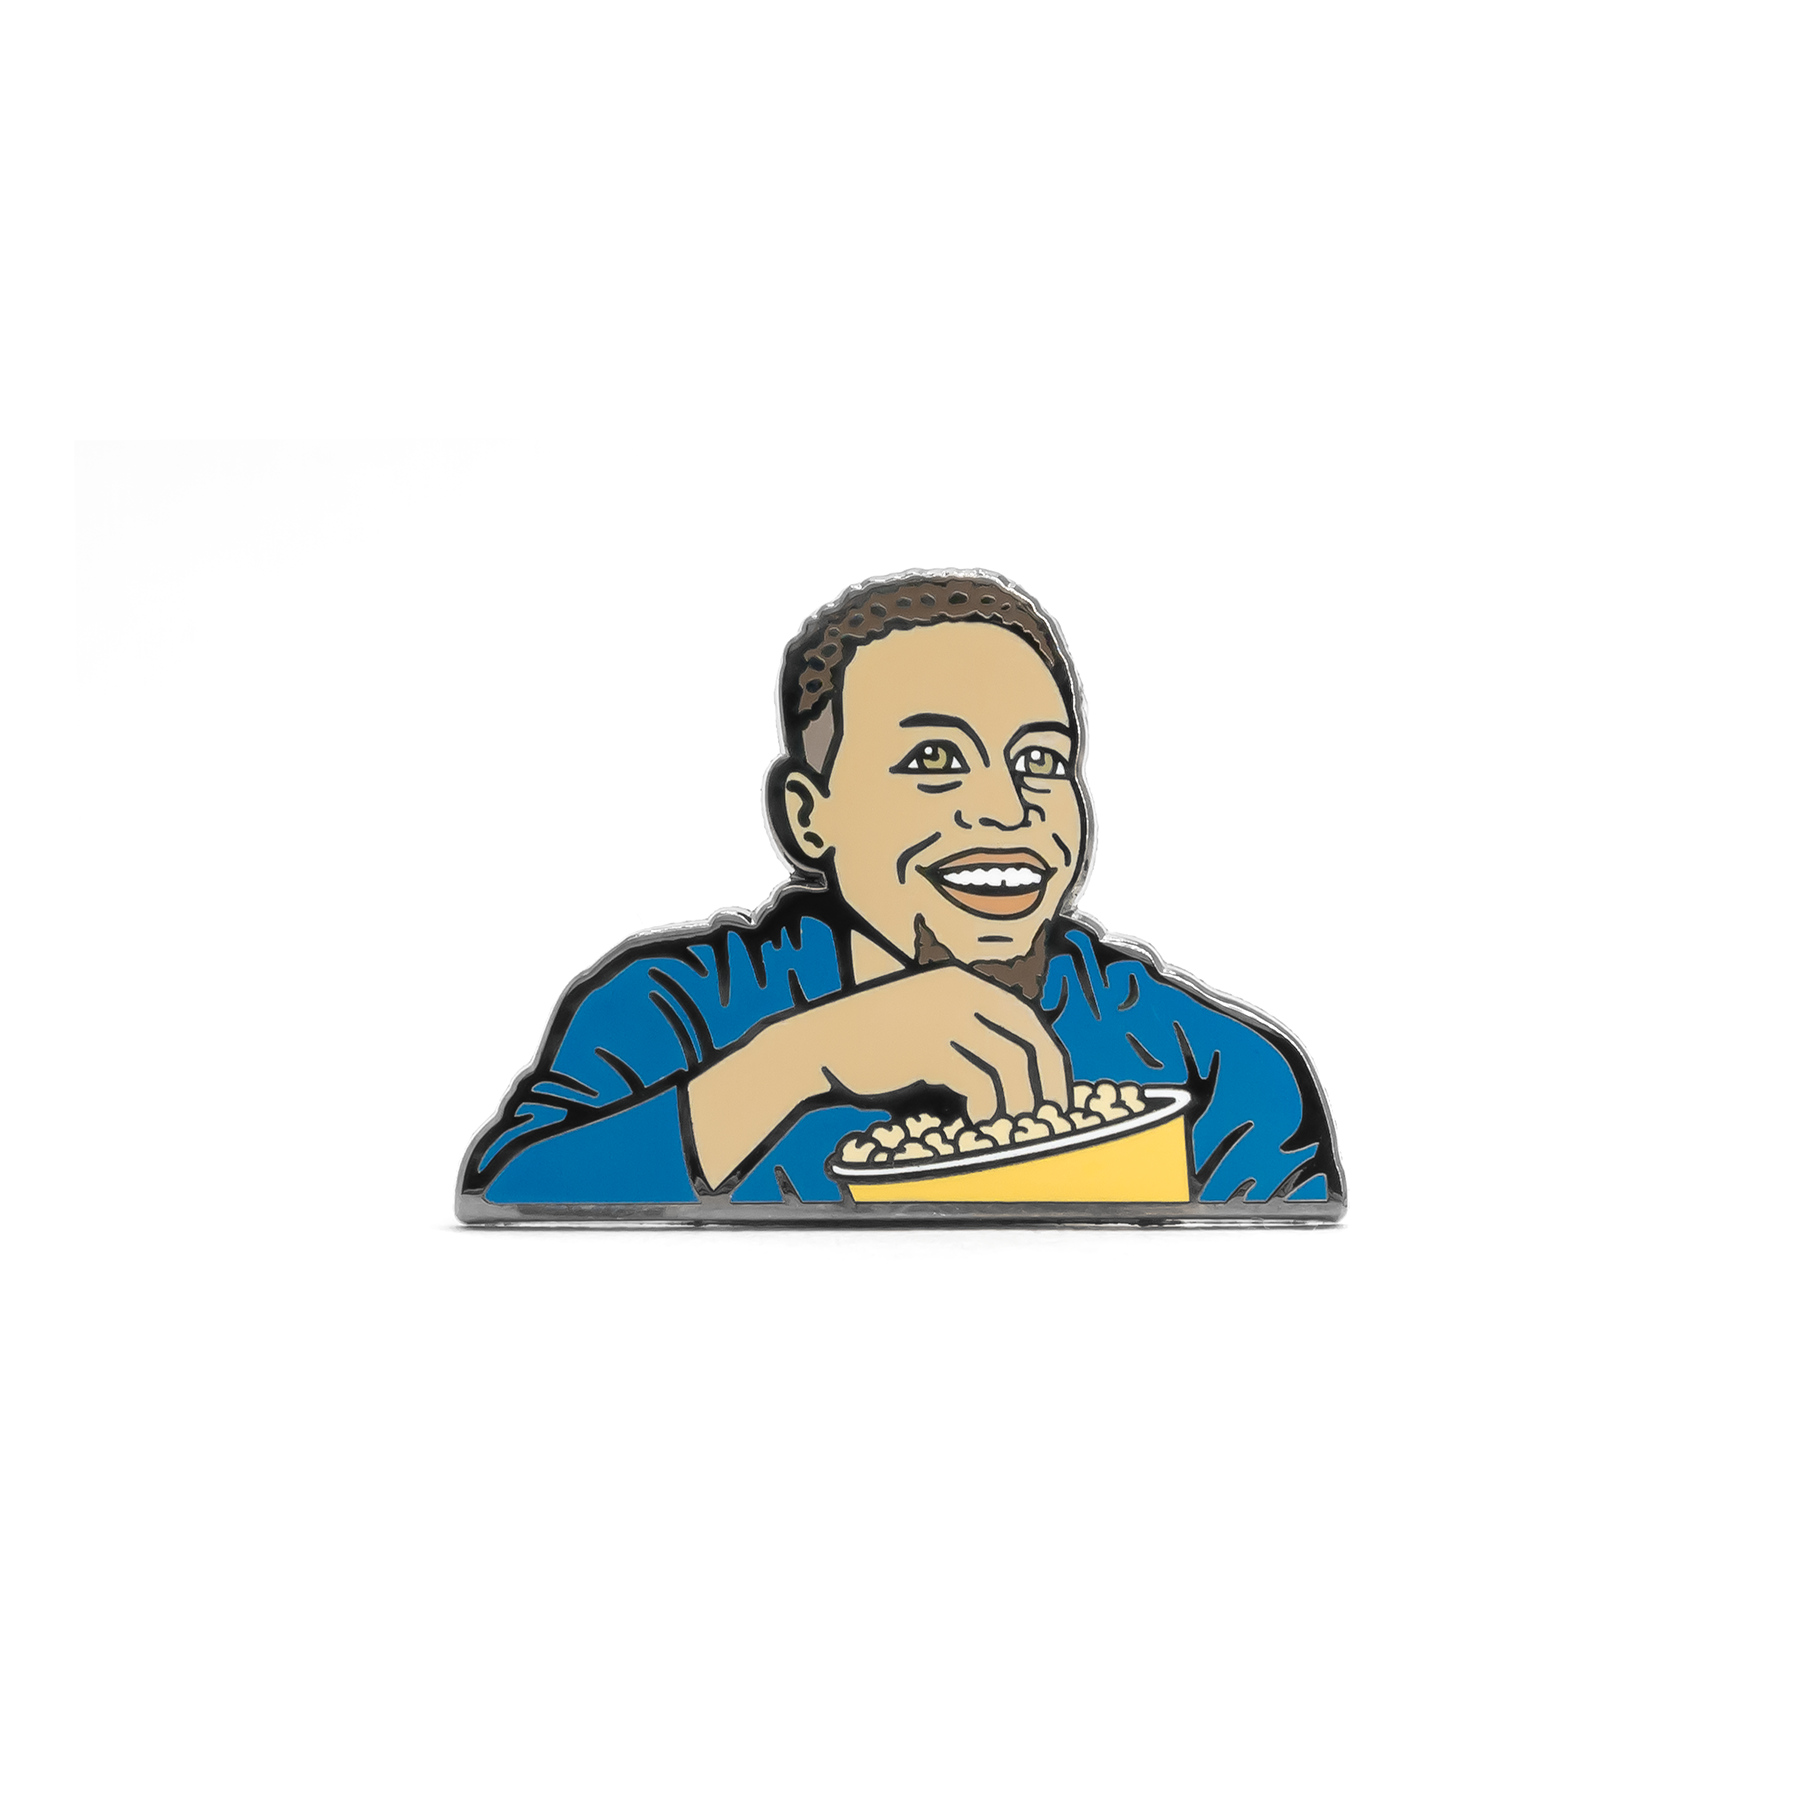 Steph Curry enamel pin